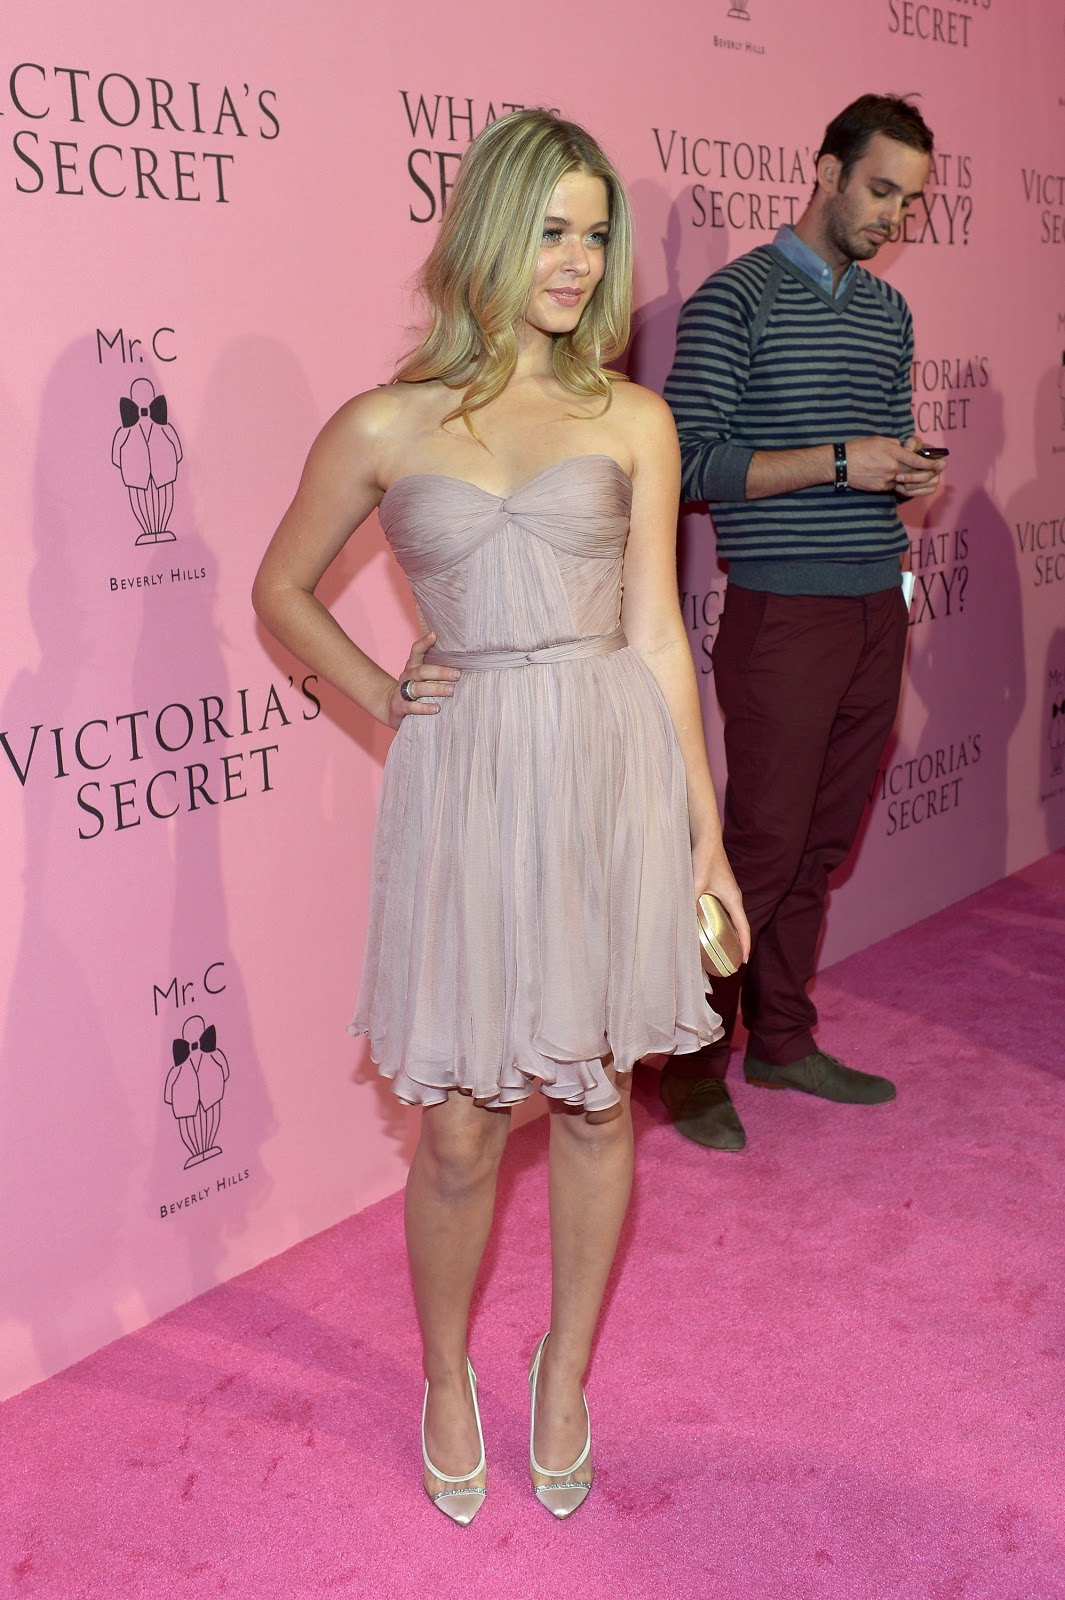 Sasha pieterse victorias secret what is sexy party at mr c in sasha pieterse victorias secret what is sexy party at mr c in beverly hills ca may 10 2012 thecheapjerseys Images